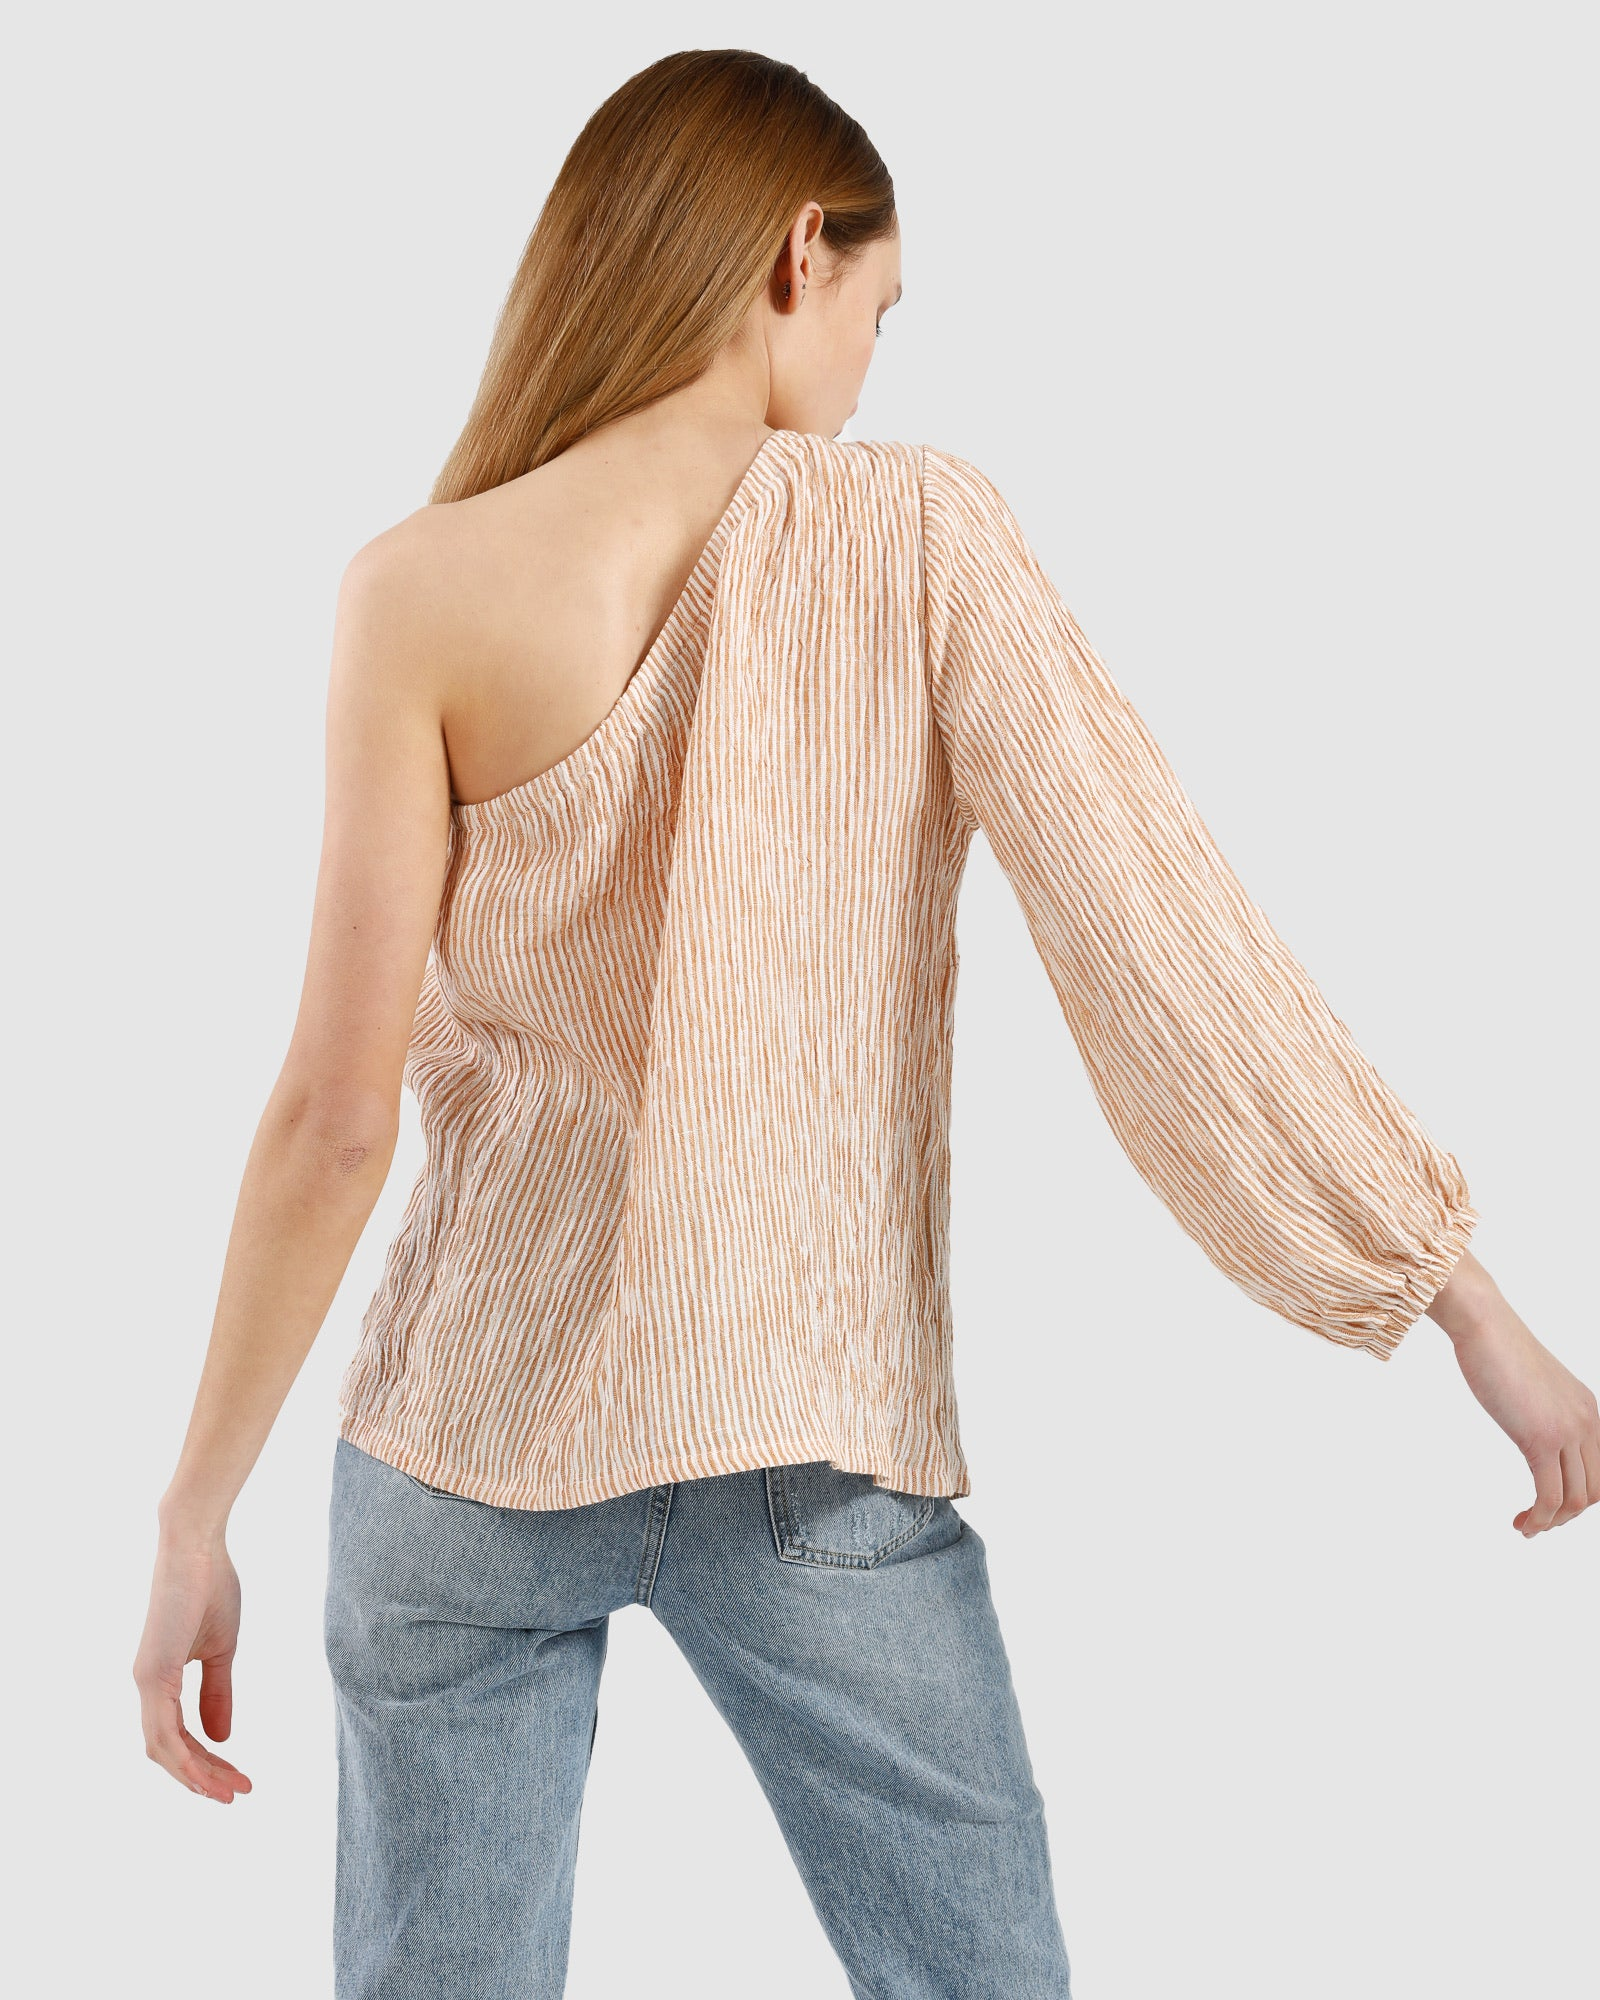 Lora Top / Ginger stripe